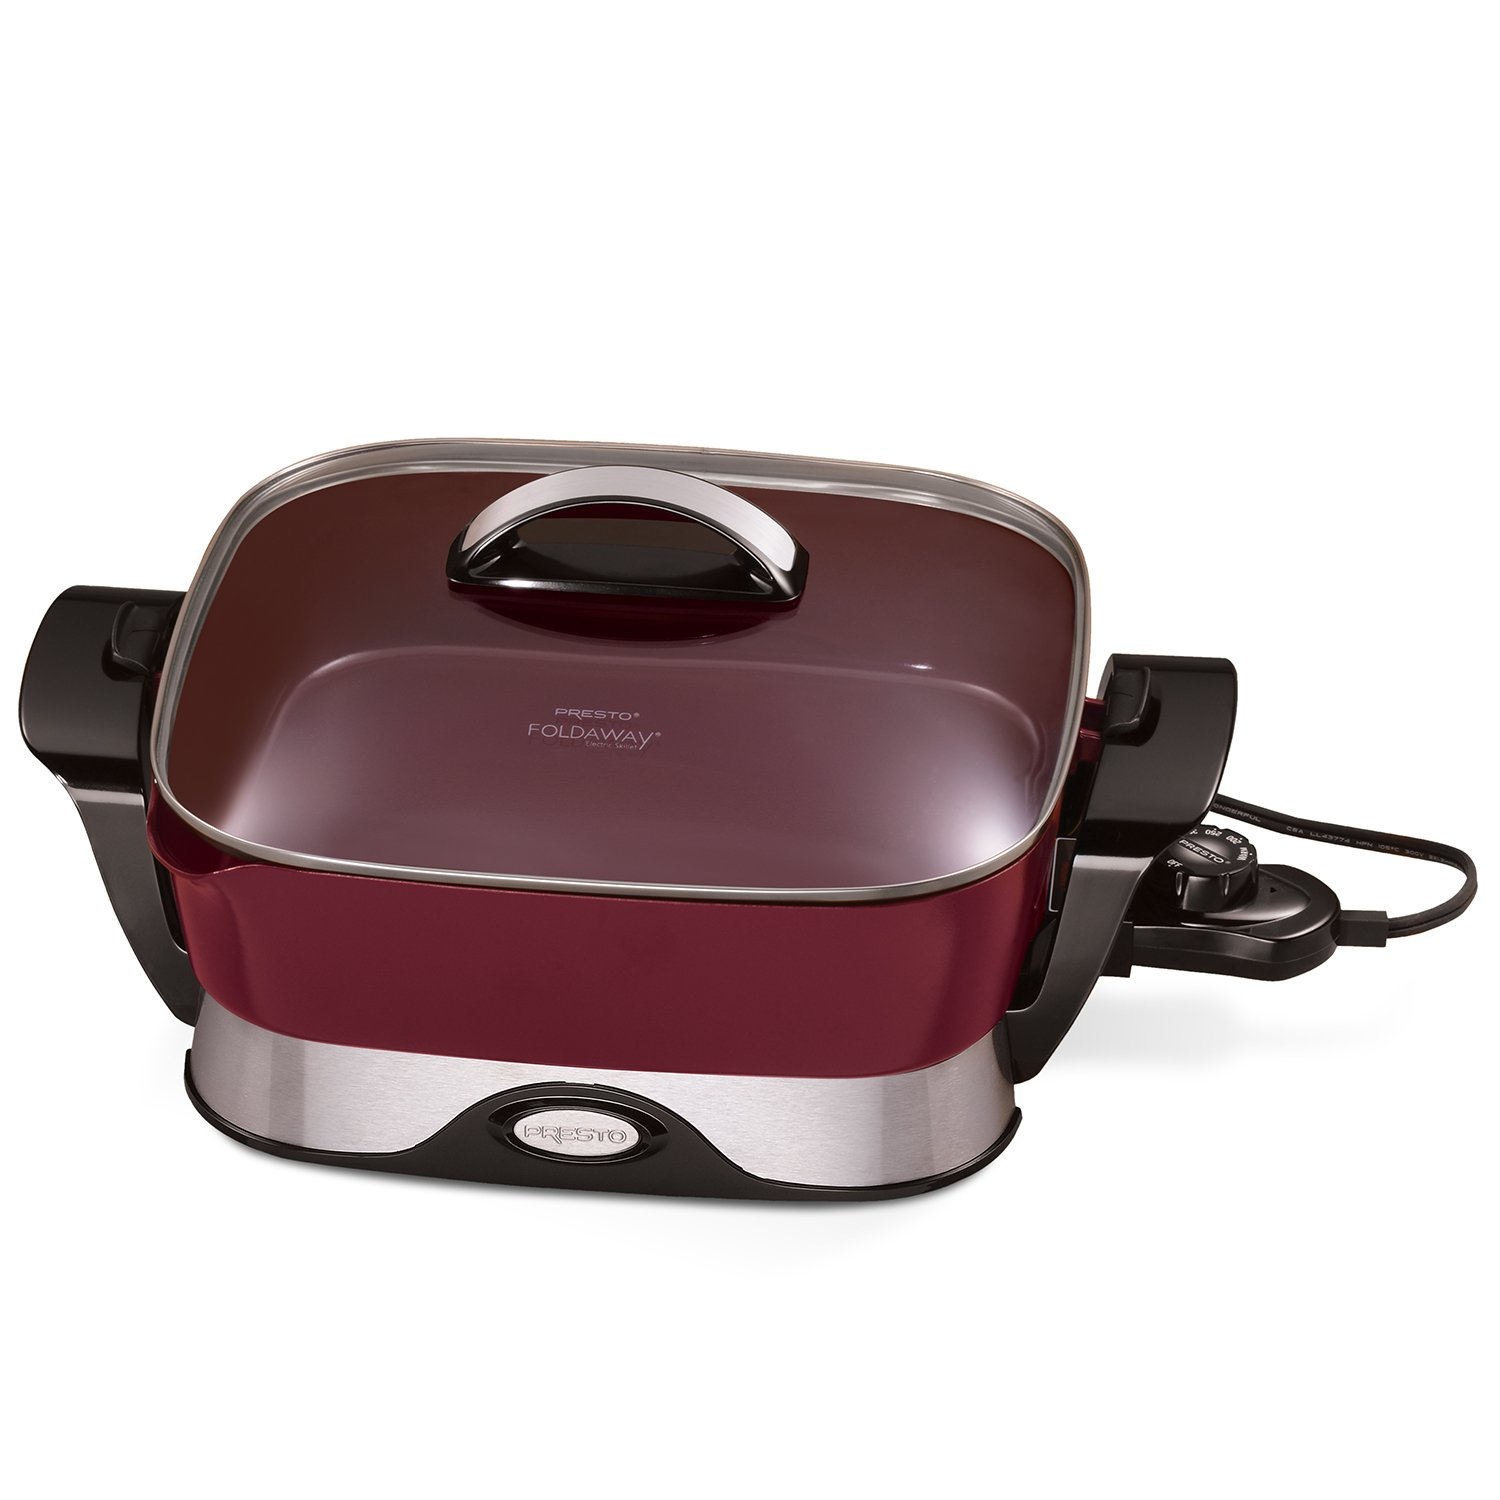 National Presto 07115 Electric Foldaway Skillet, 12-Inch, Burgundy